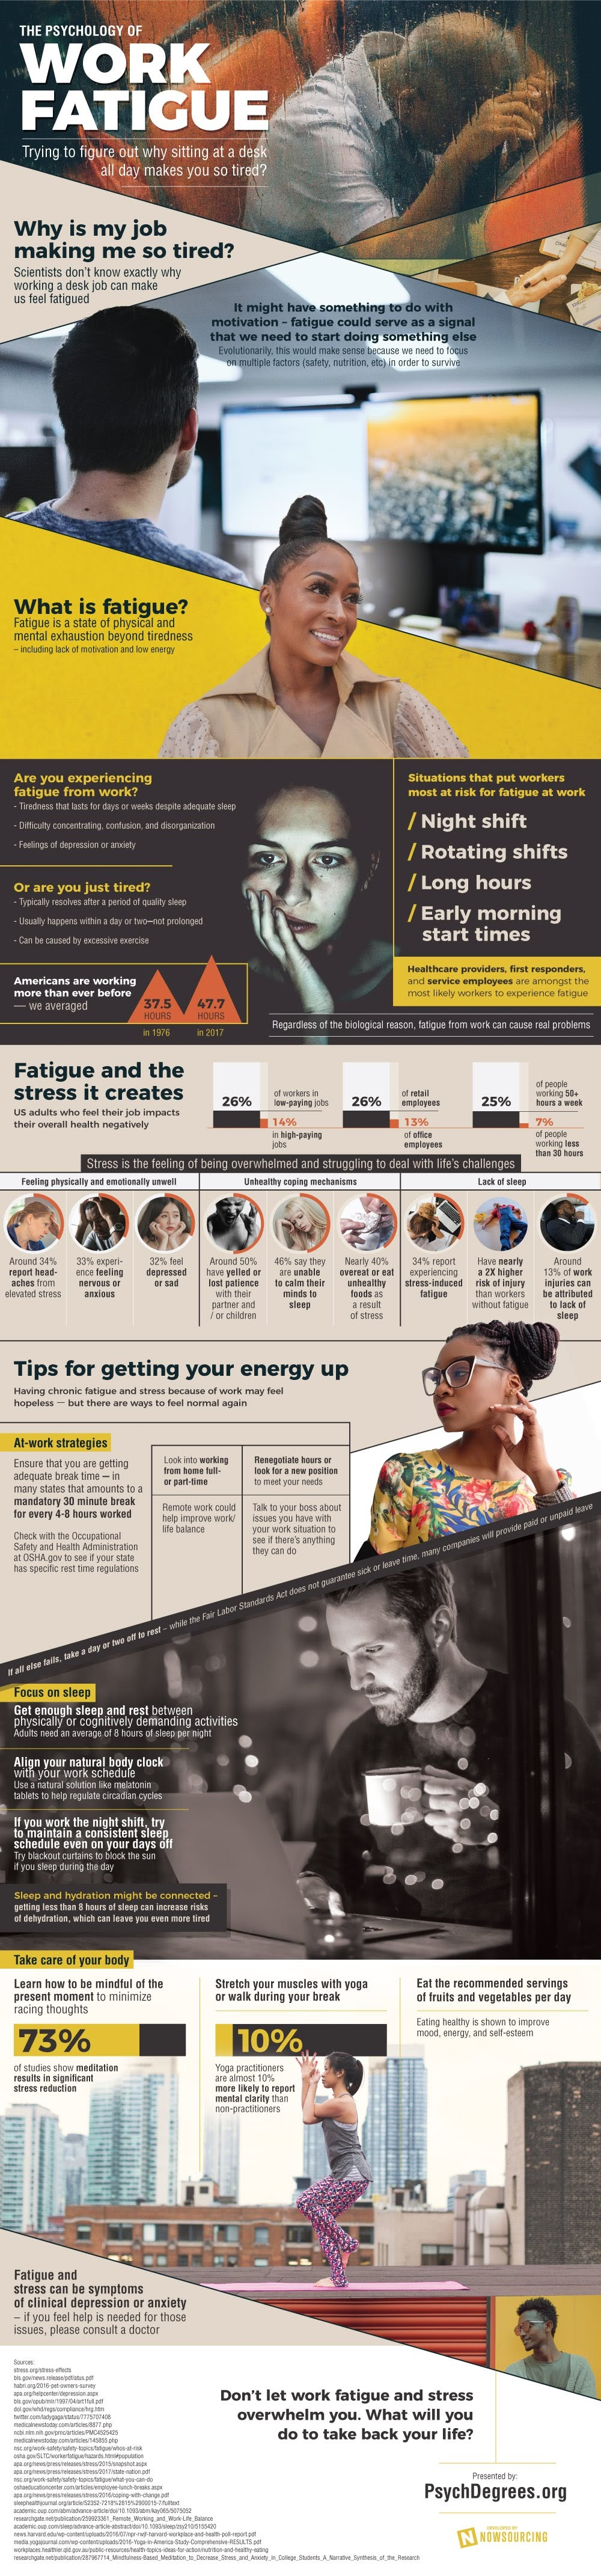 Psychology of Work Fatigue